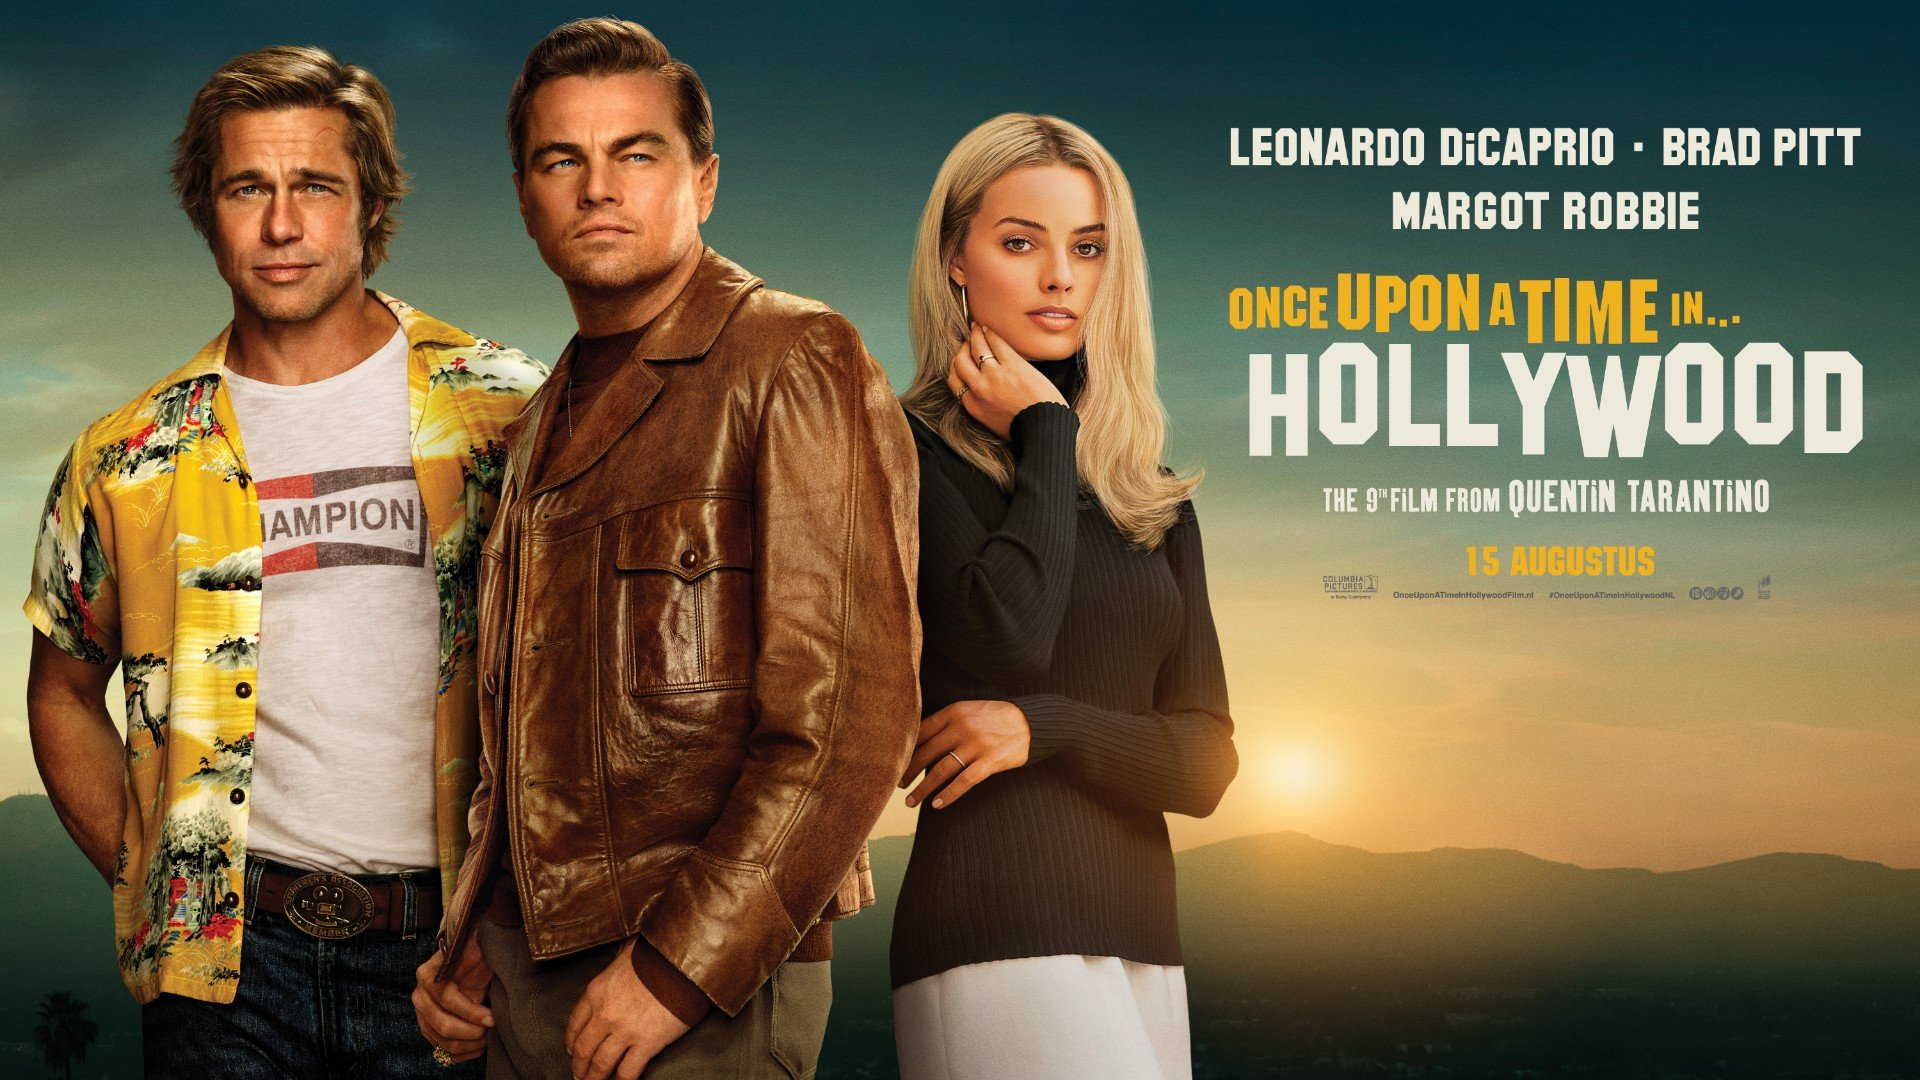 Once Upon a Time in Hollywood กาลครั้งหนึ่งในฮอลลีวู้ด